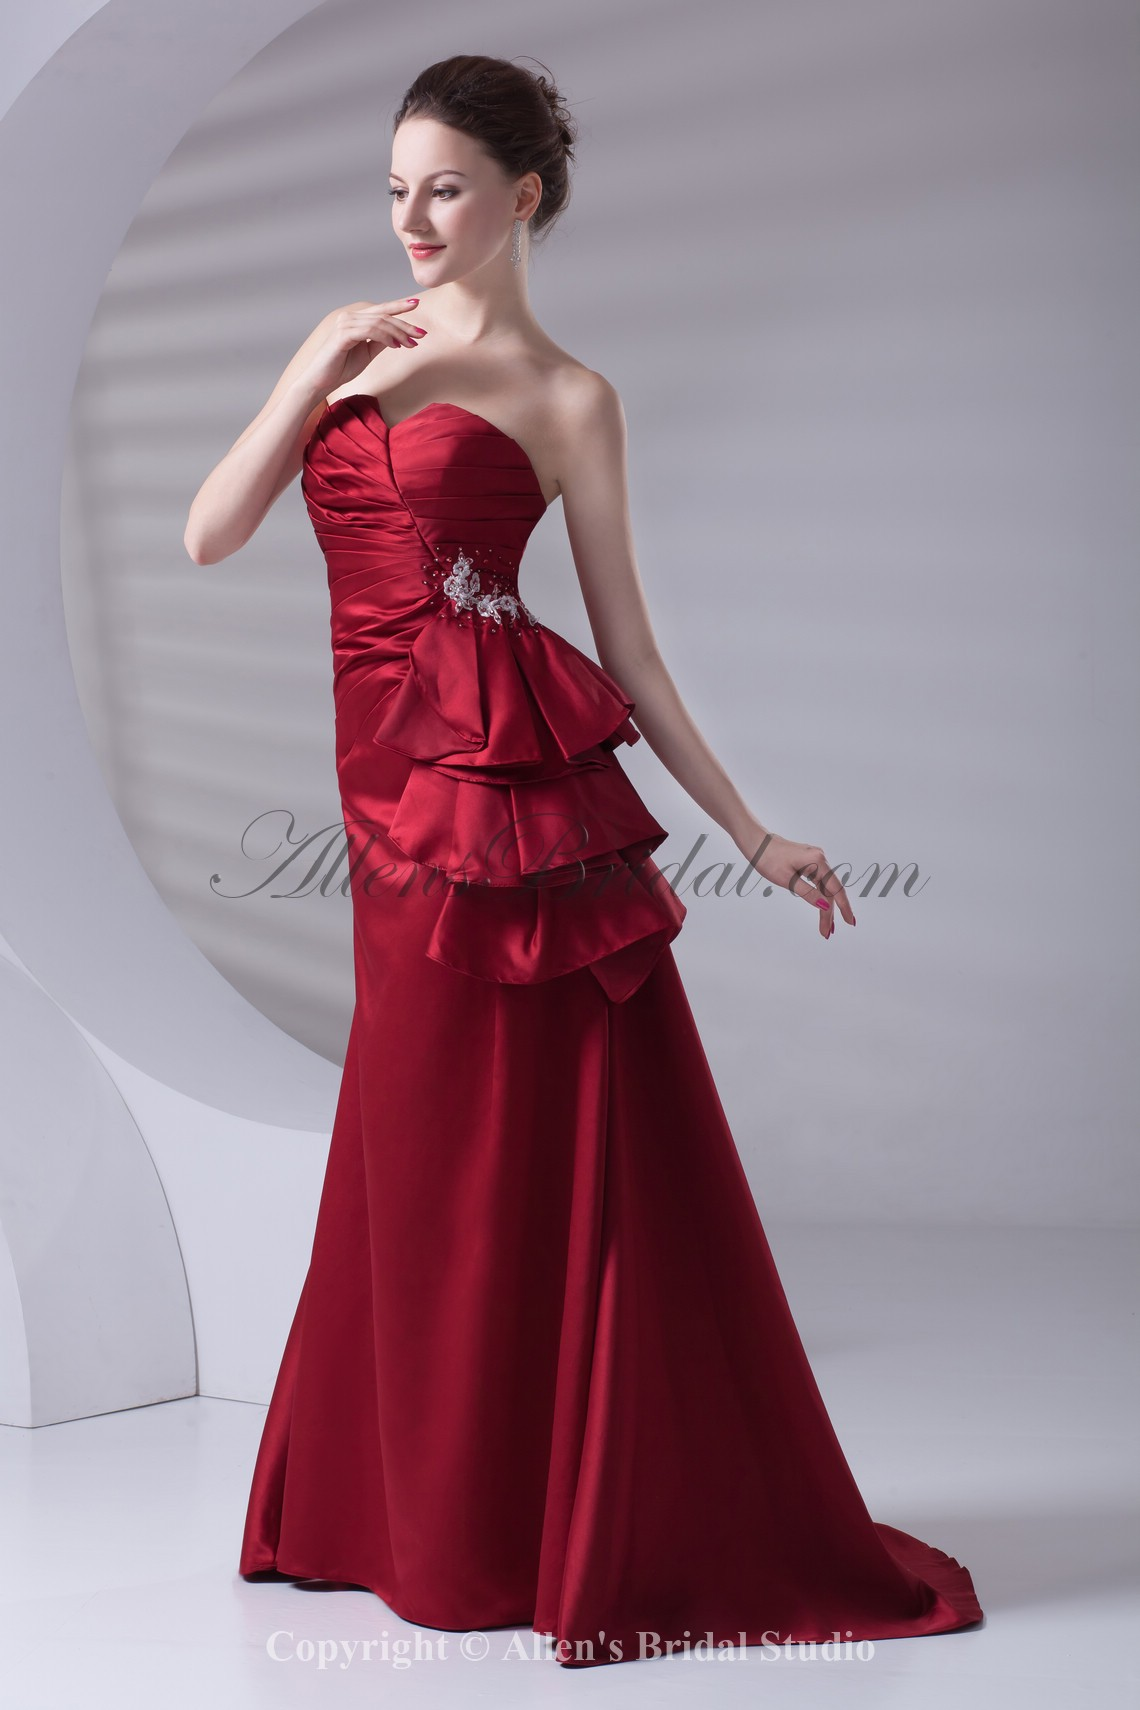 /401-3206/satin-strapless-a-line-floor-length-ruched-prom-dress.jpg